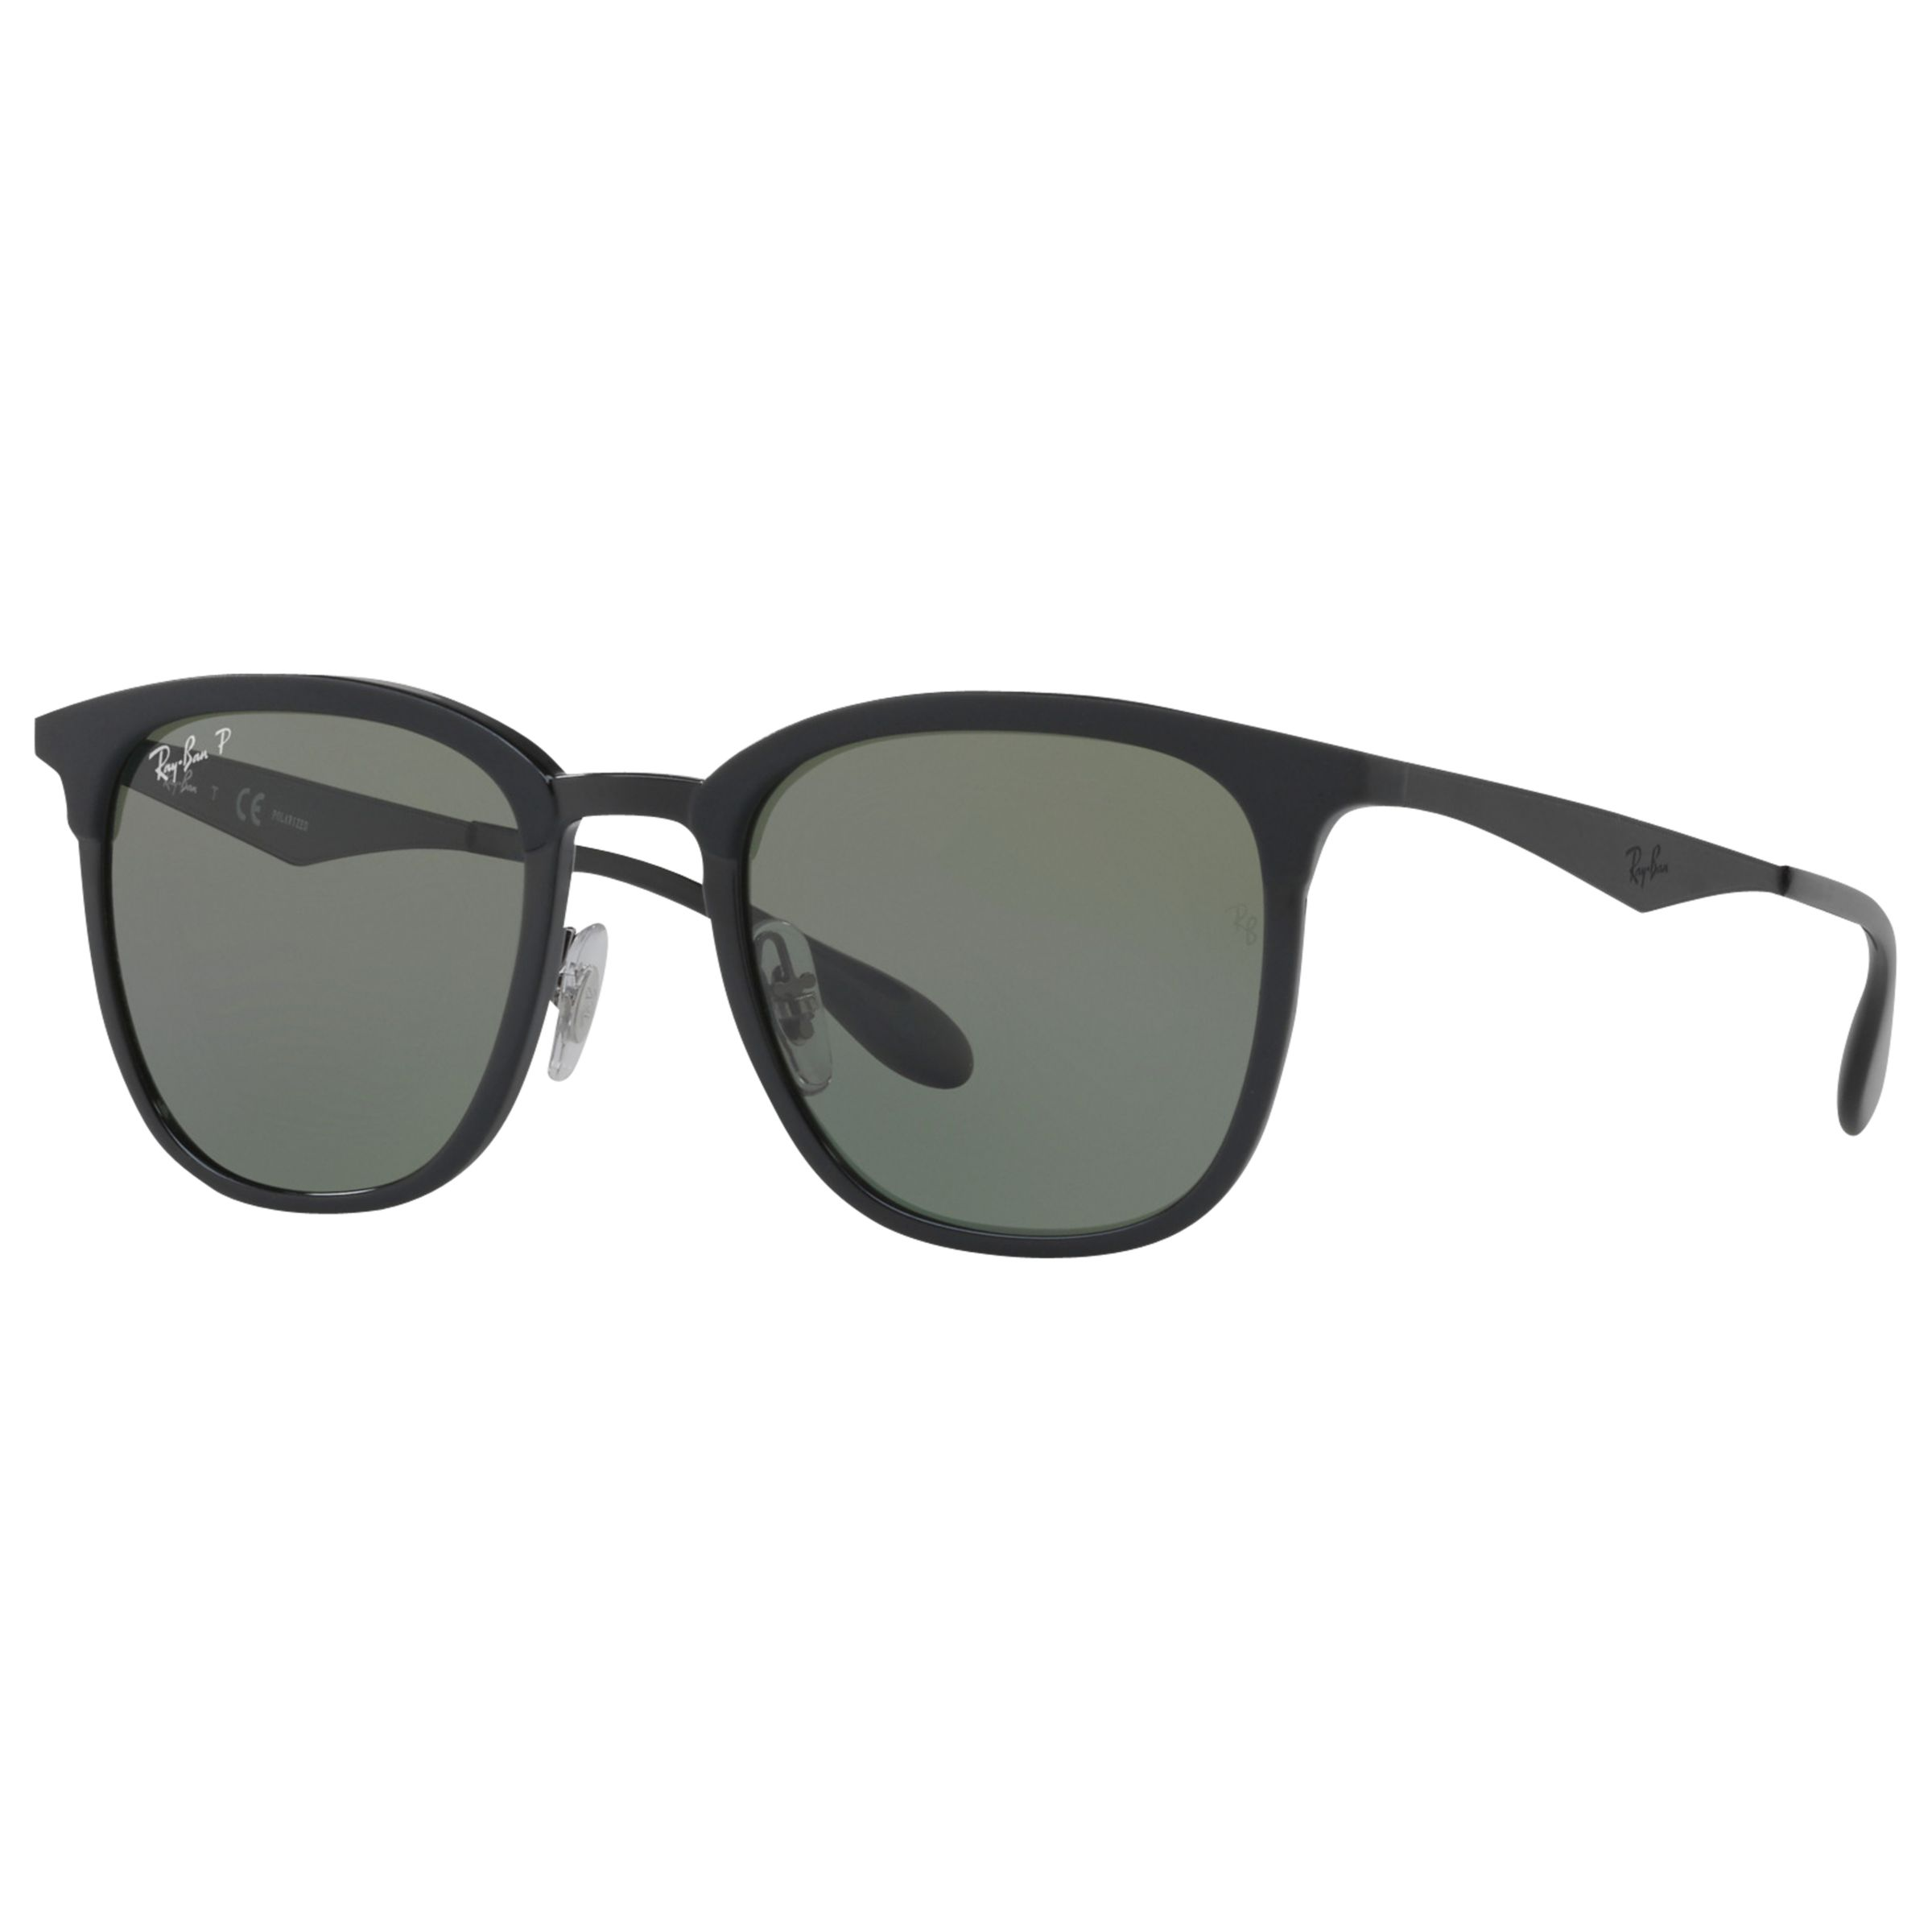 a3412c055d Ray-Ban RB4278 Polarised Square Sunglasses